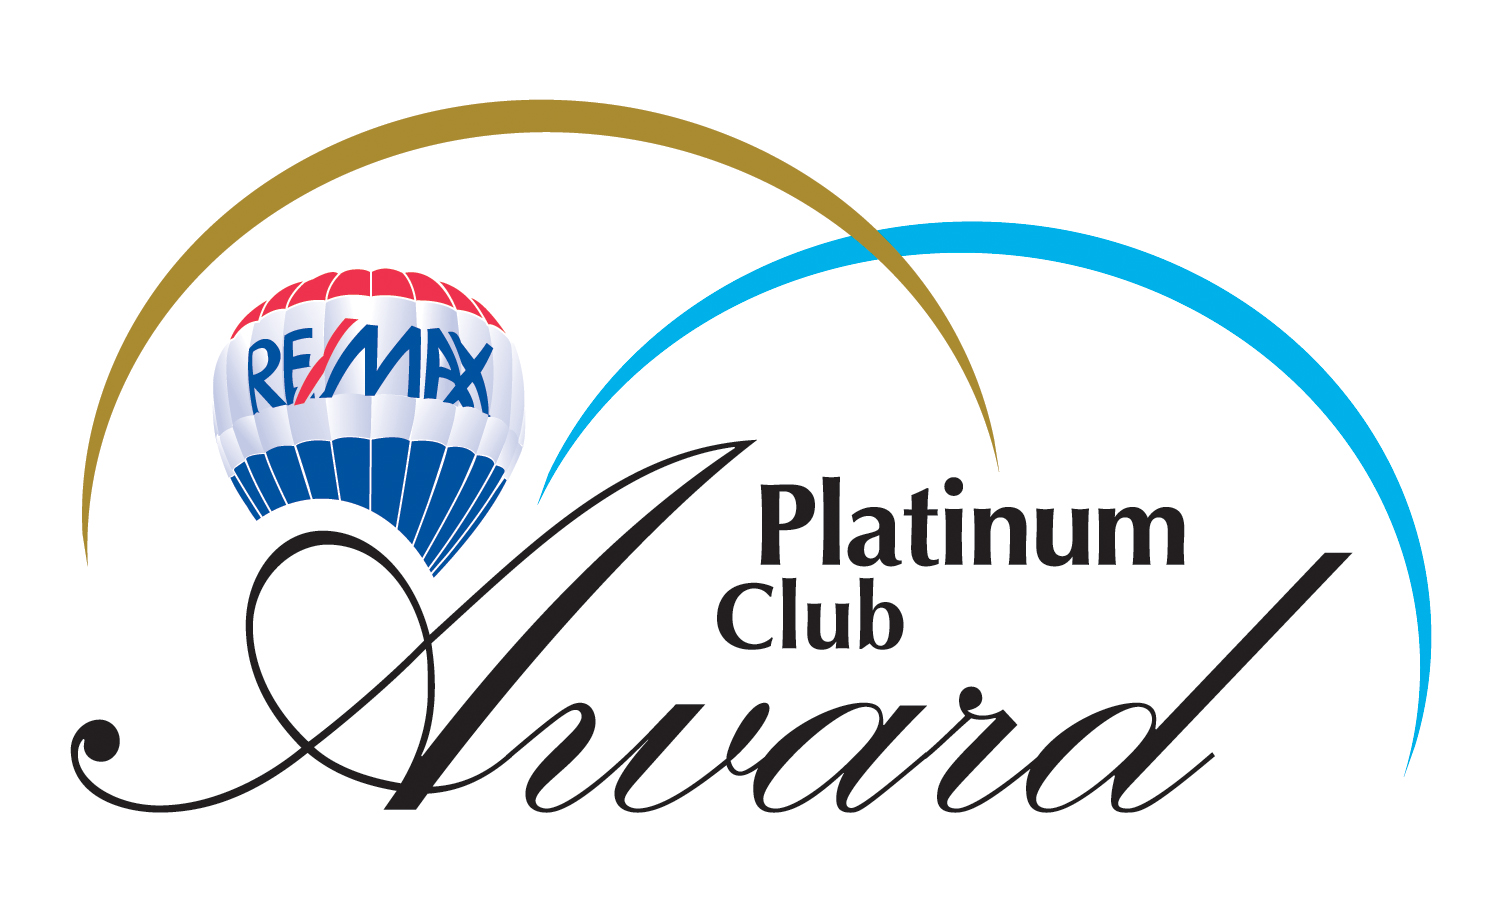 In 2017, I was given the  RE/MAX Platinum Club Award